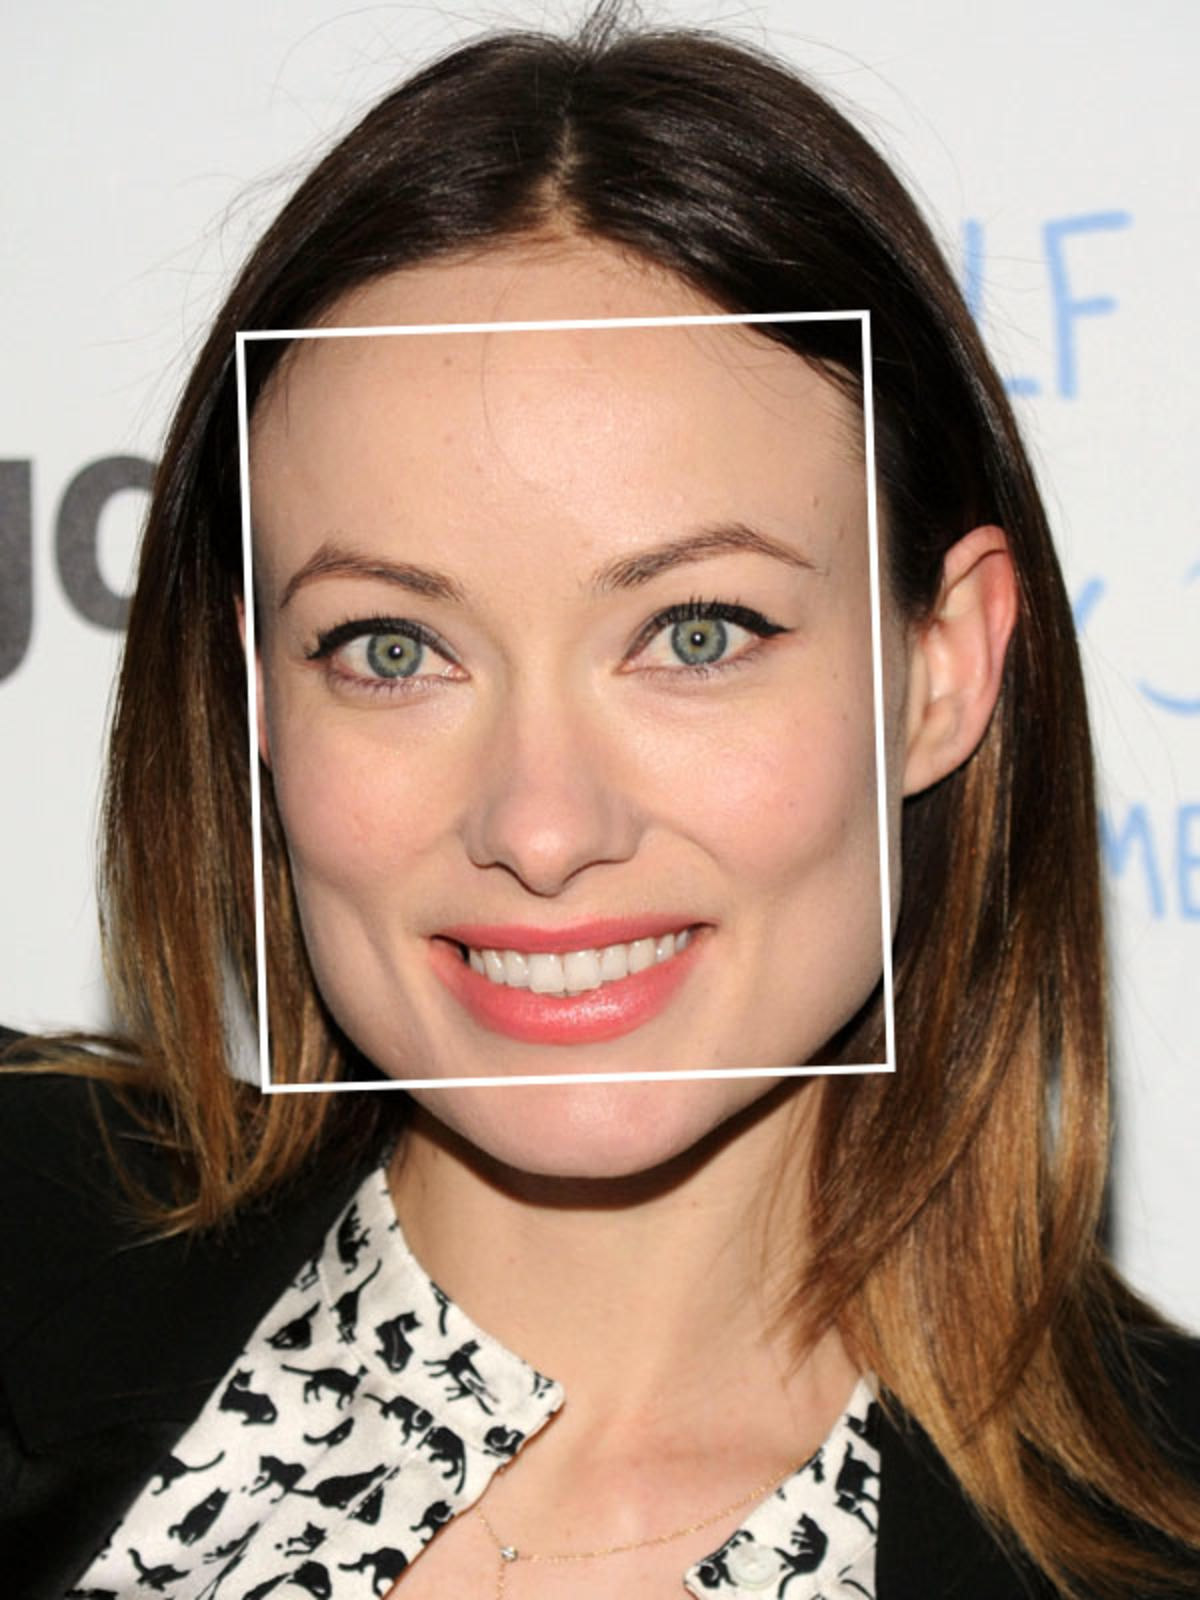 The Best and Worst Bangs for Square Face Shapes Pinterest